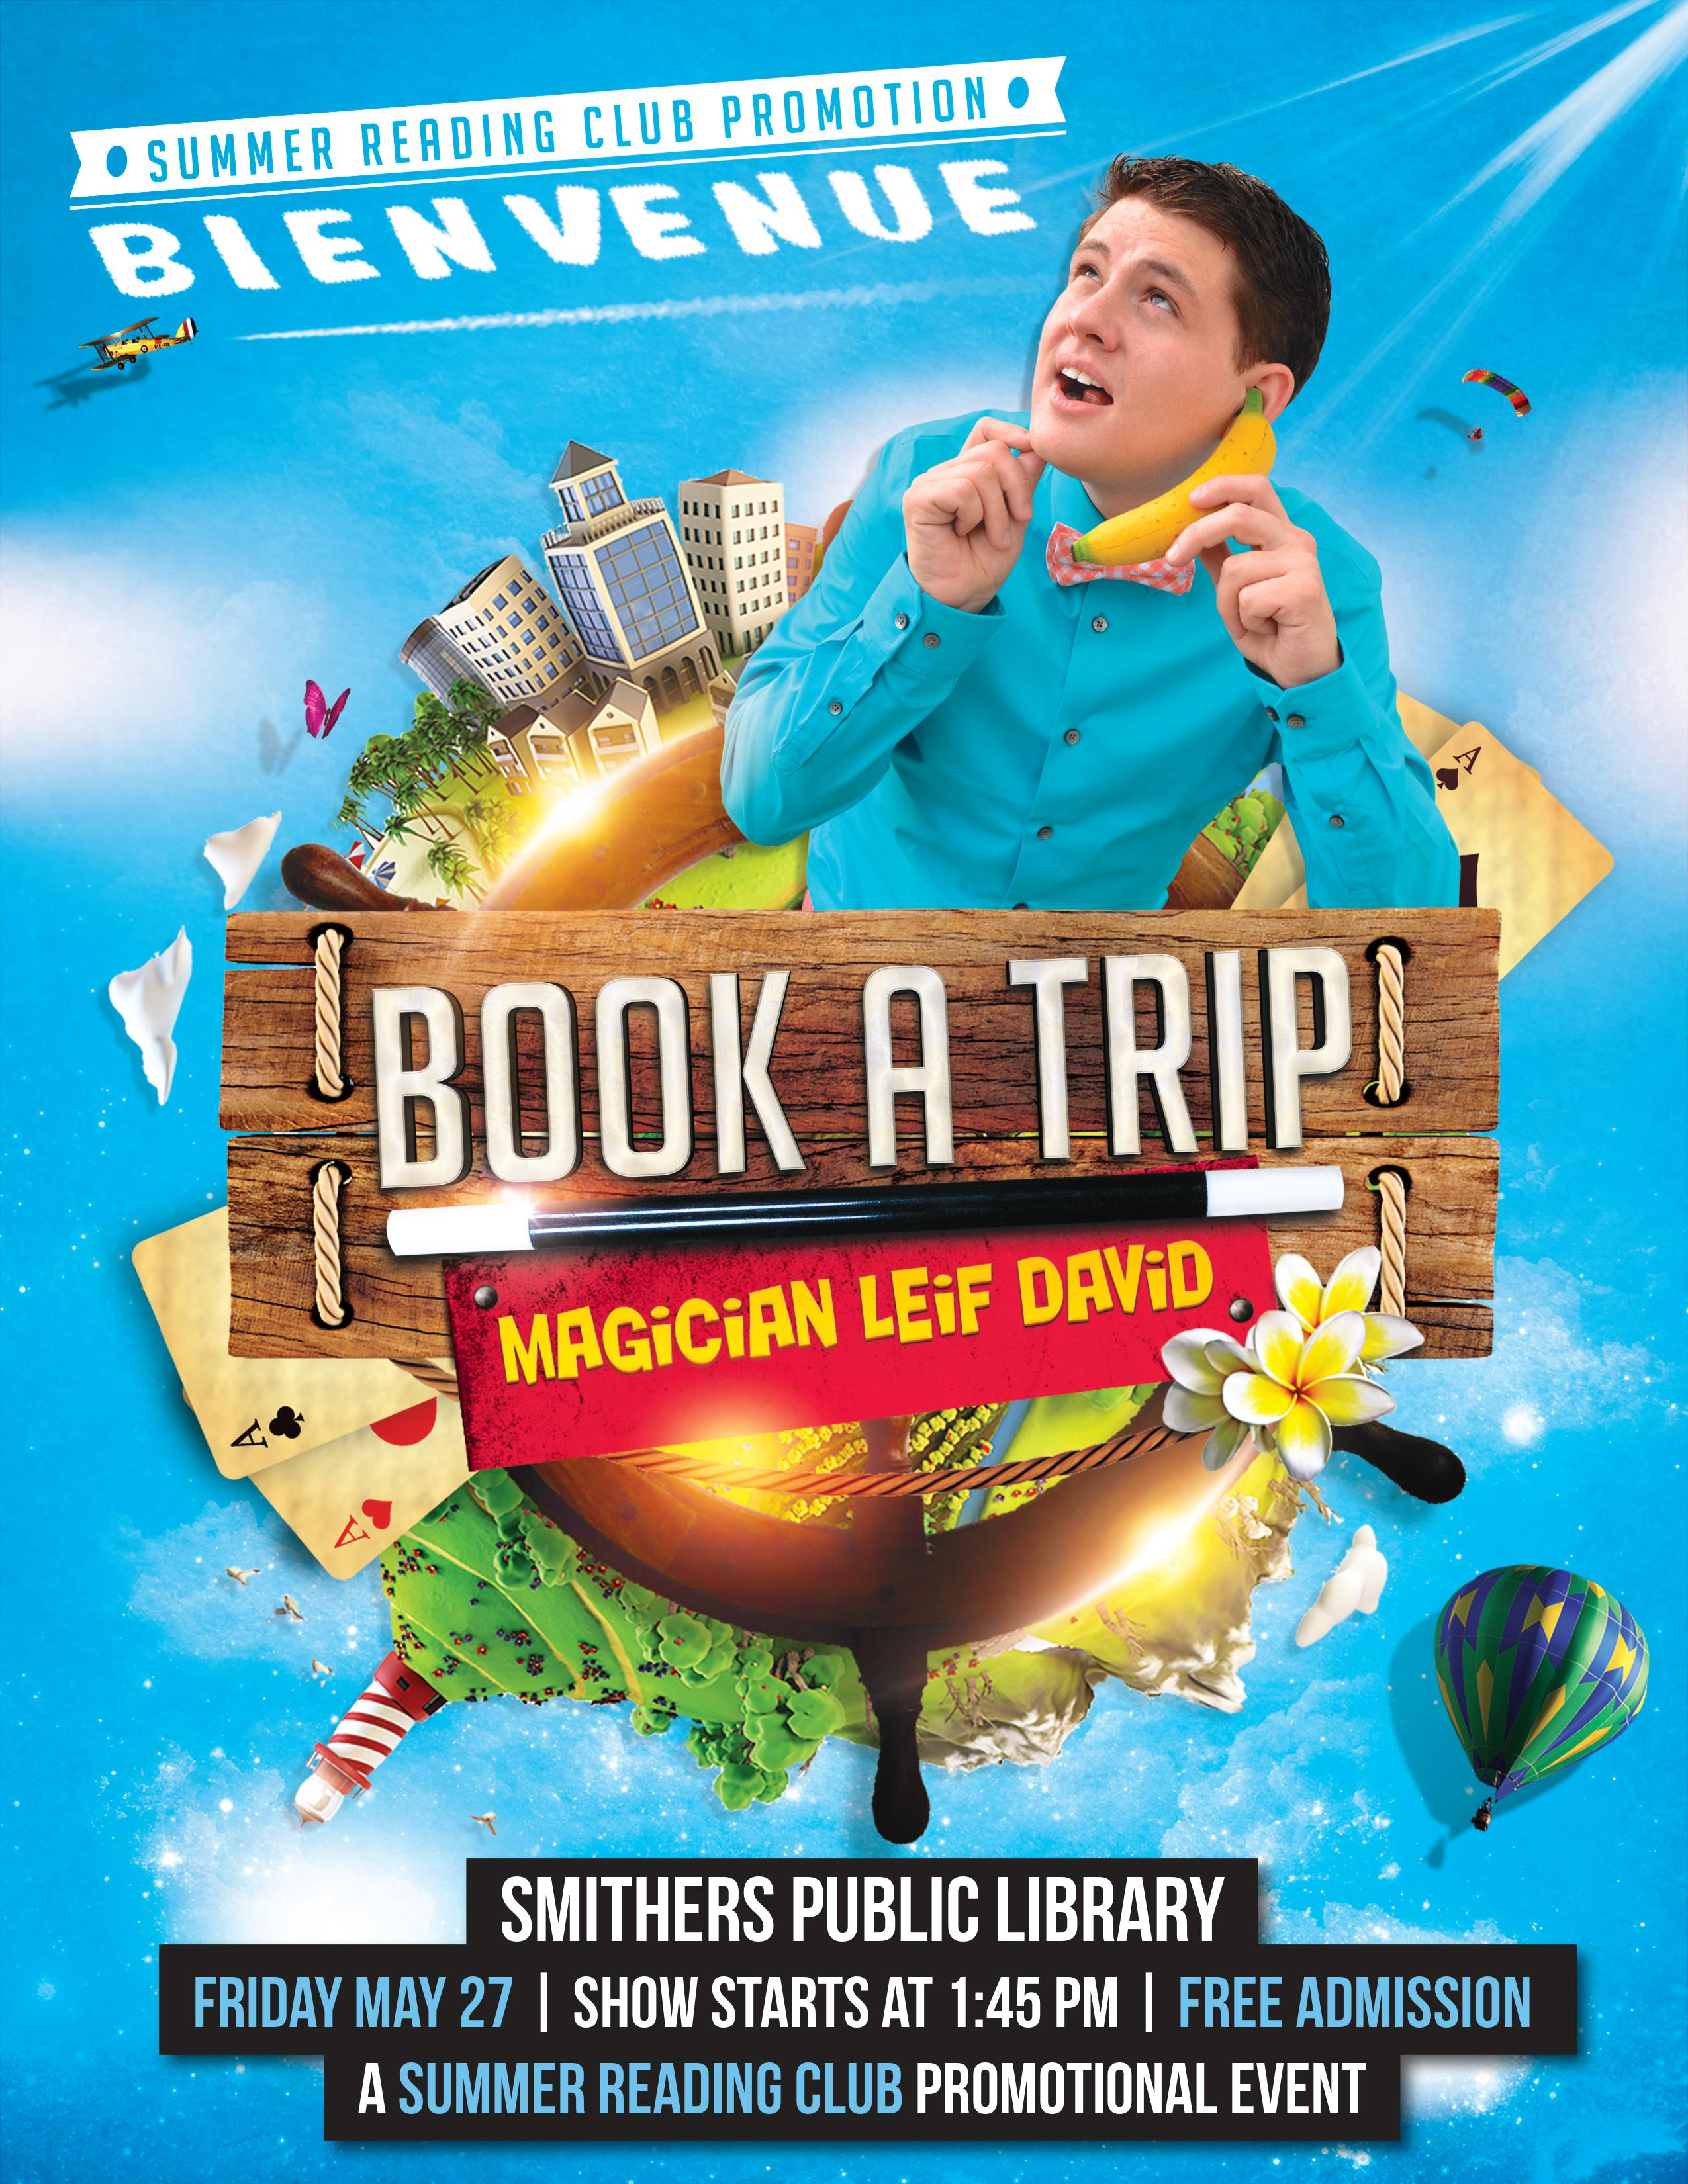 Magic Show with Leif David @ Smithers Public Library